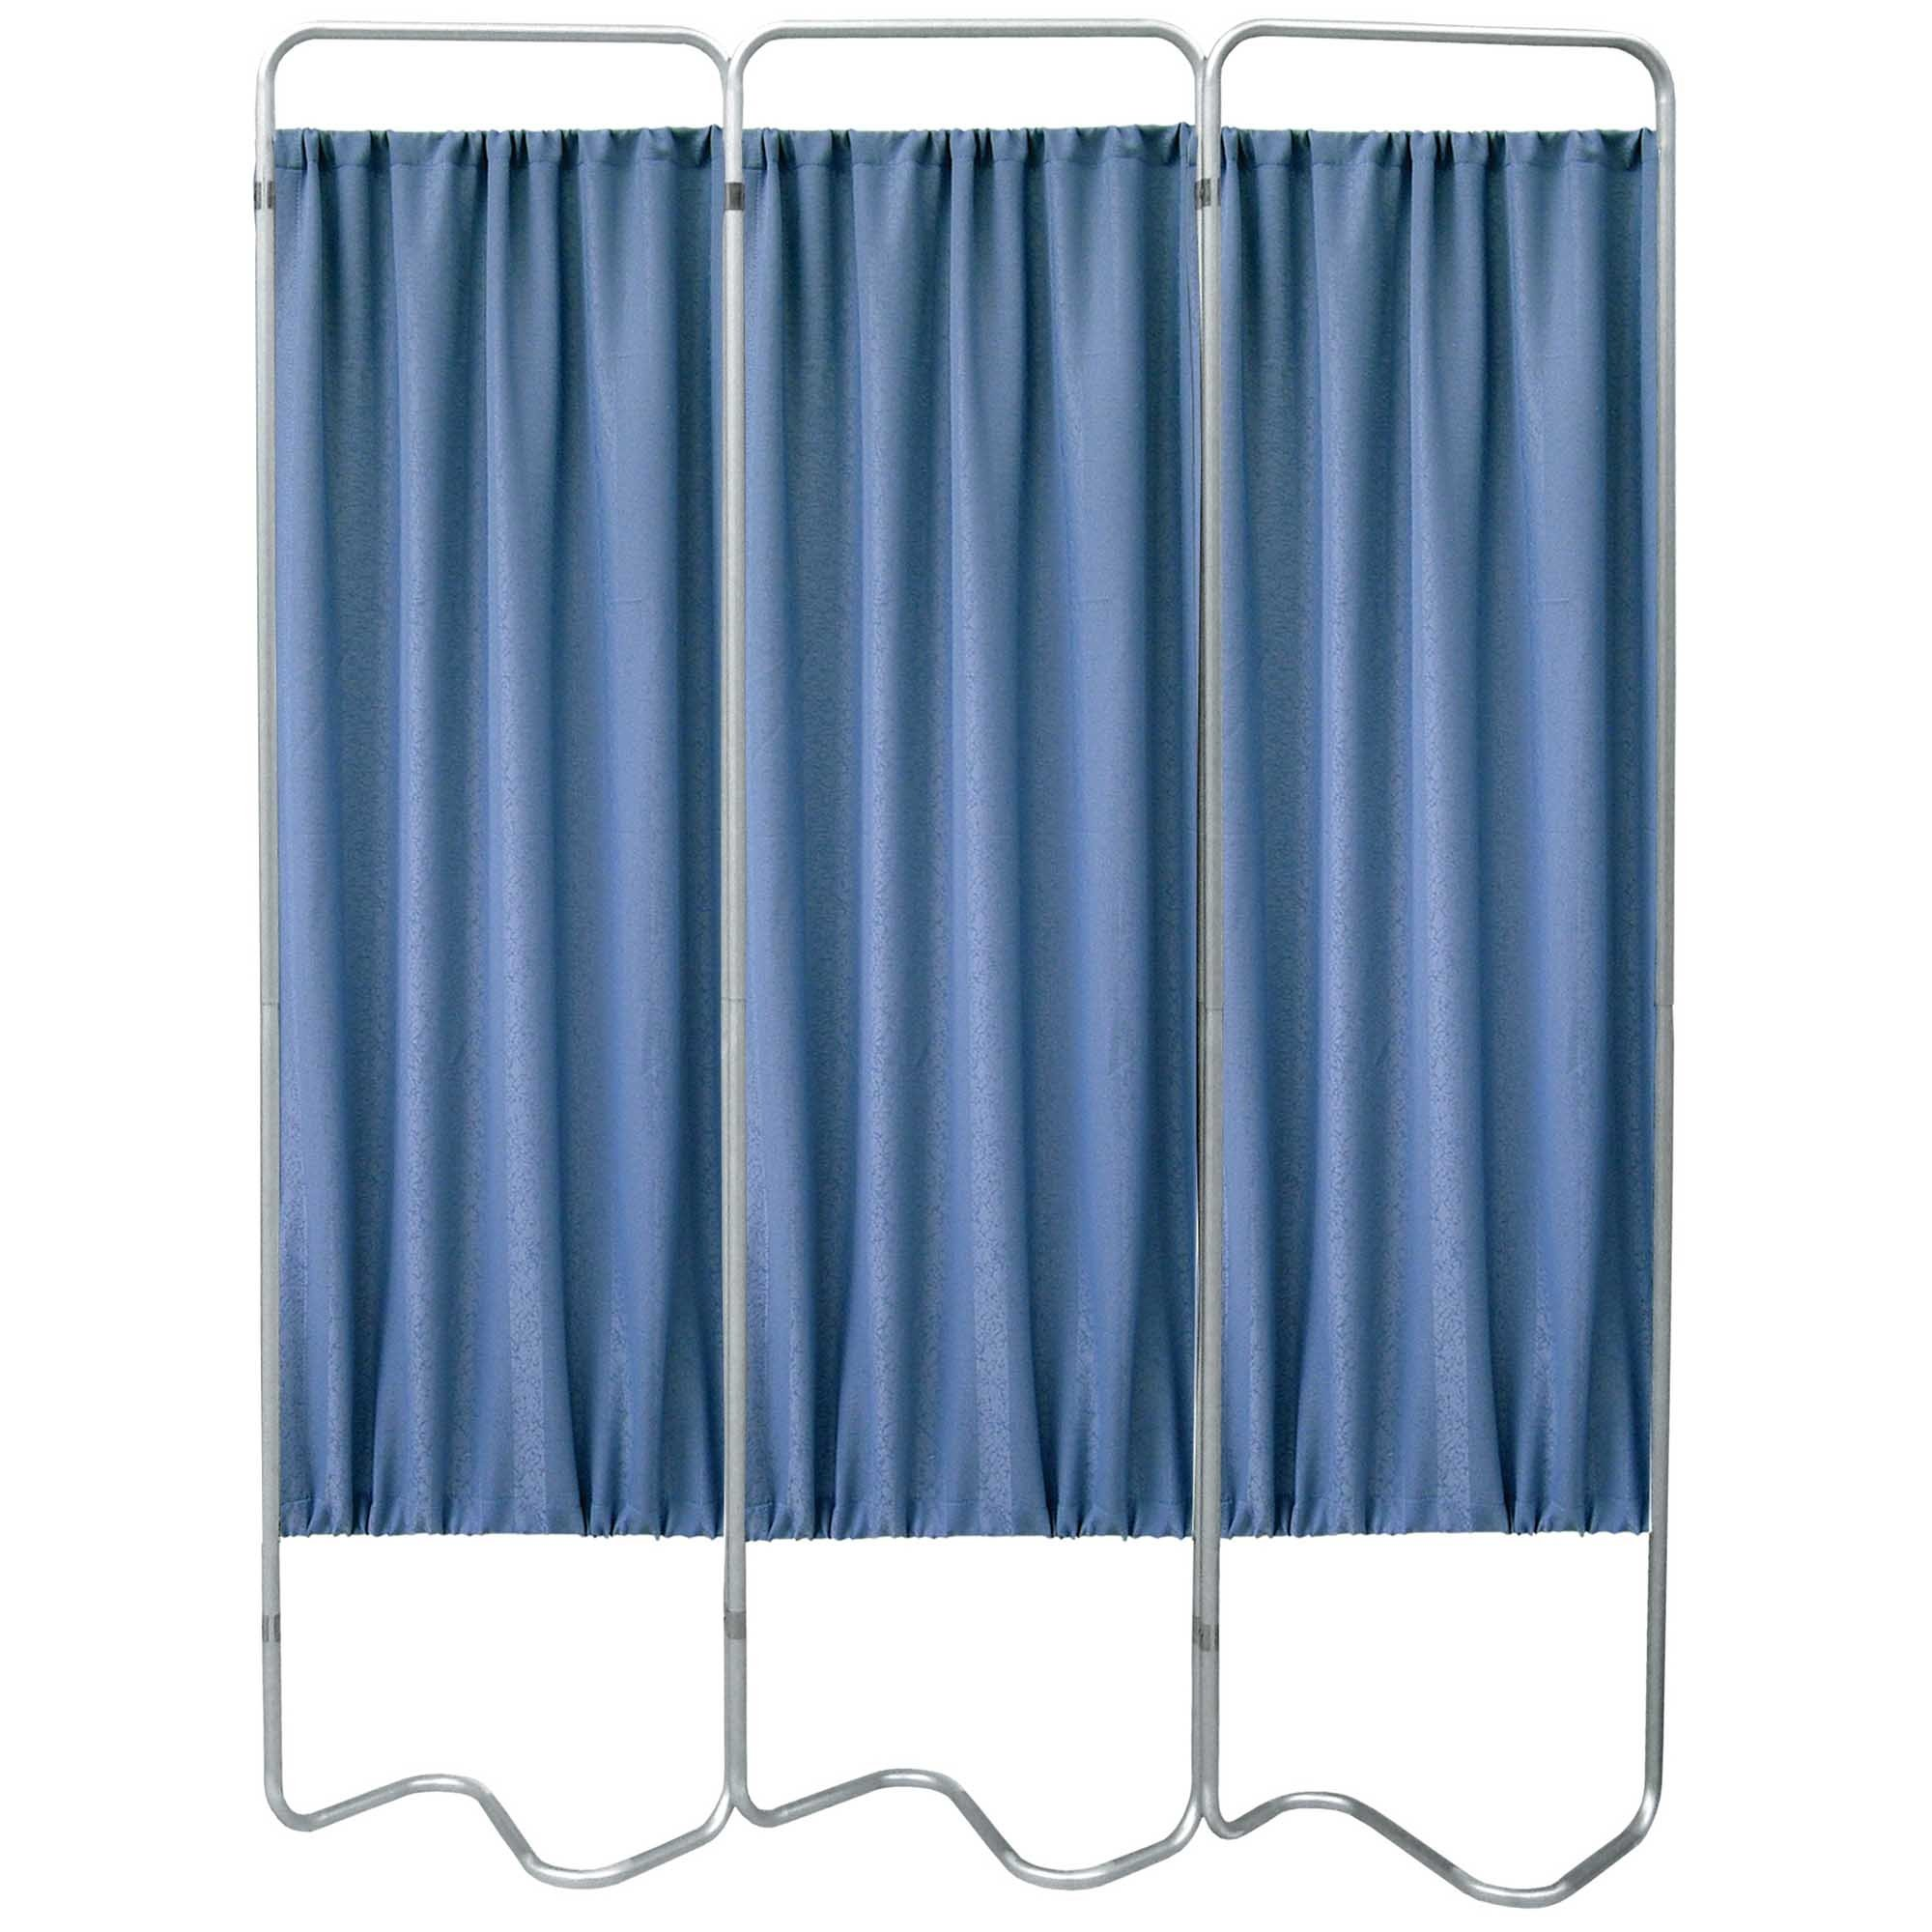 Beamatic 3 Section Folding Privacy Screen - Norway Designer Cloth Screen Panel